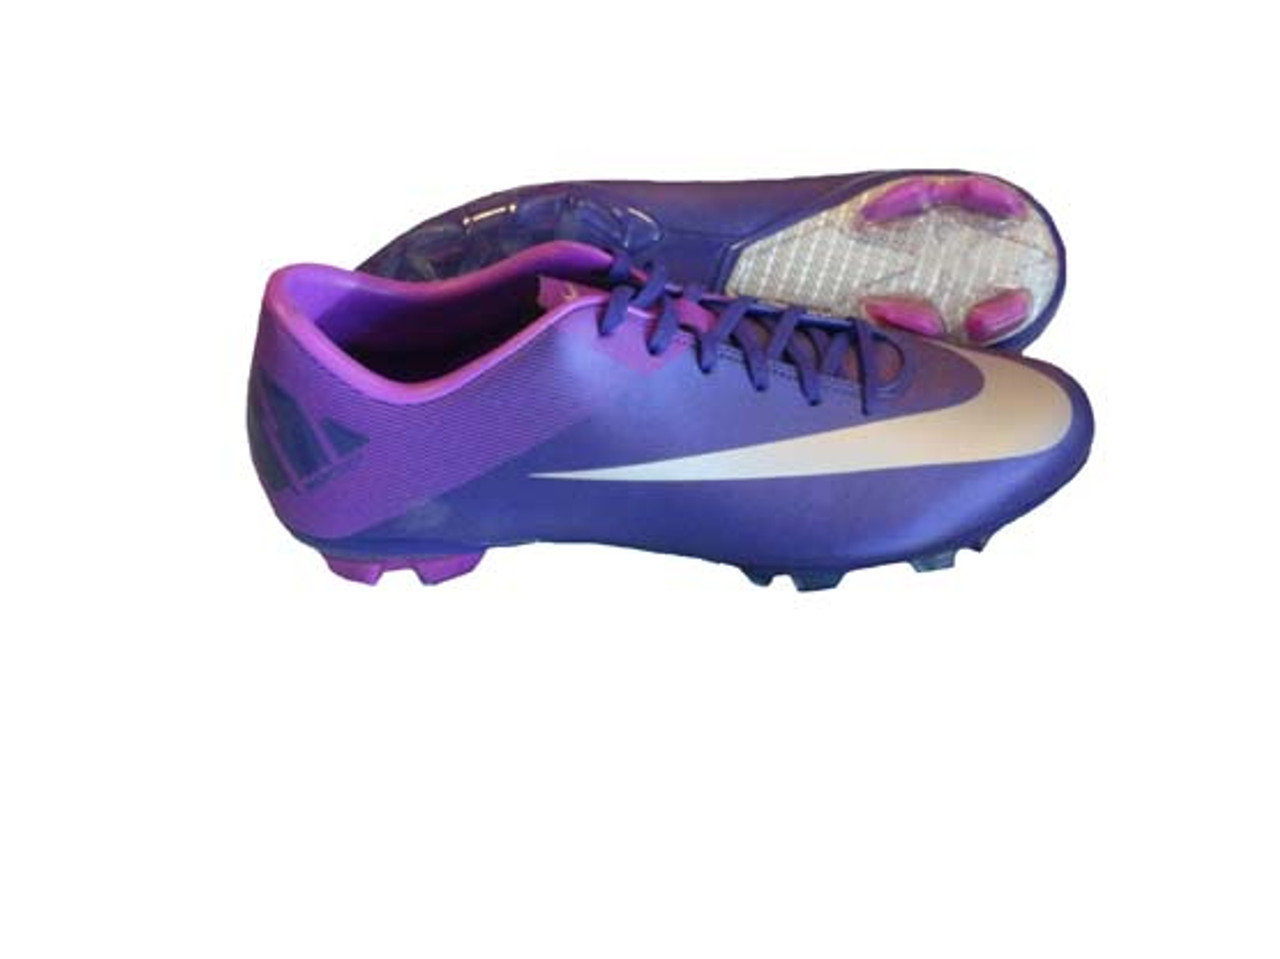 timeless design 066d7 be39f NIKE MERCURIAL MIRACLE FG PURPLE - Soccer Plus